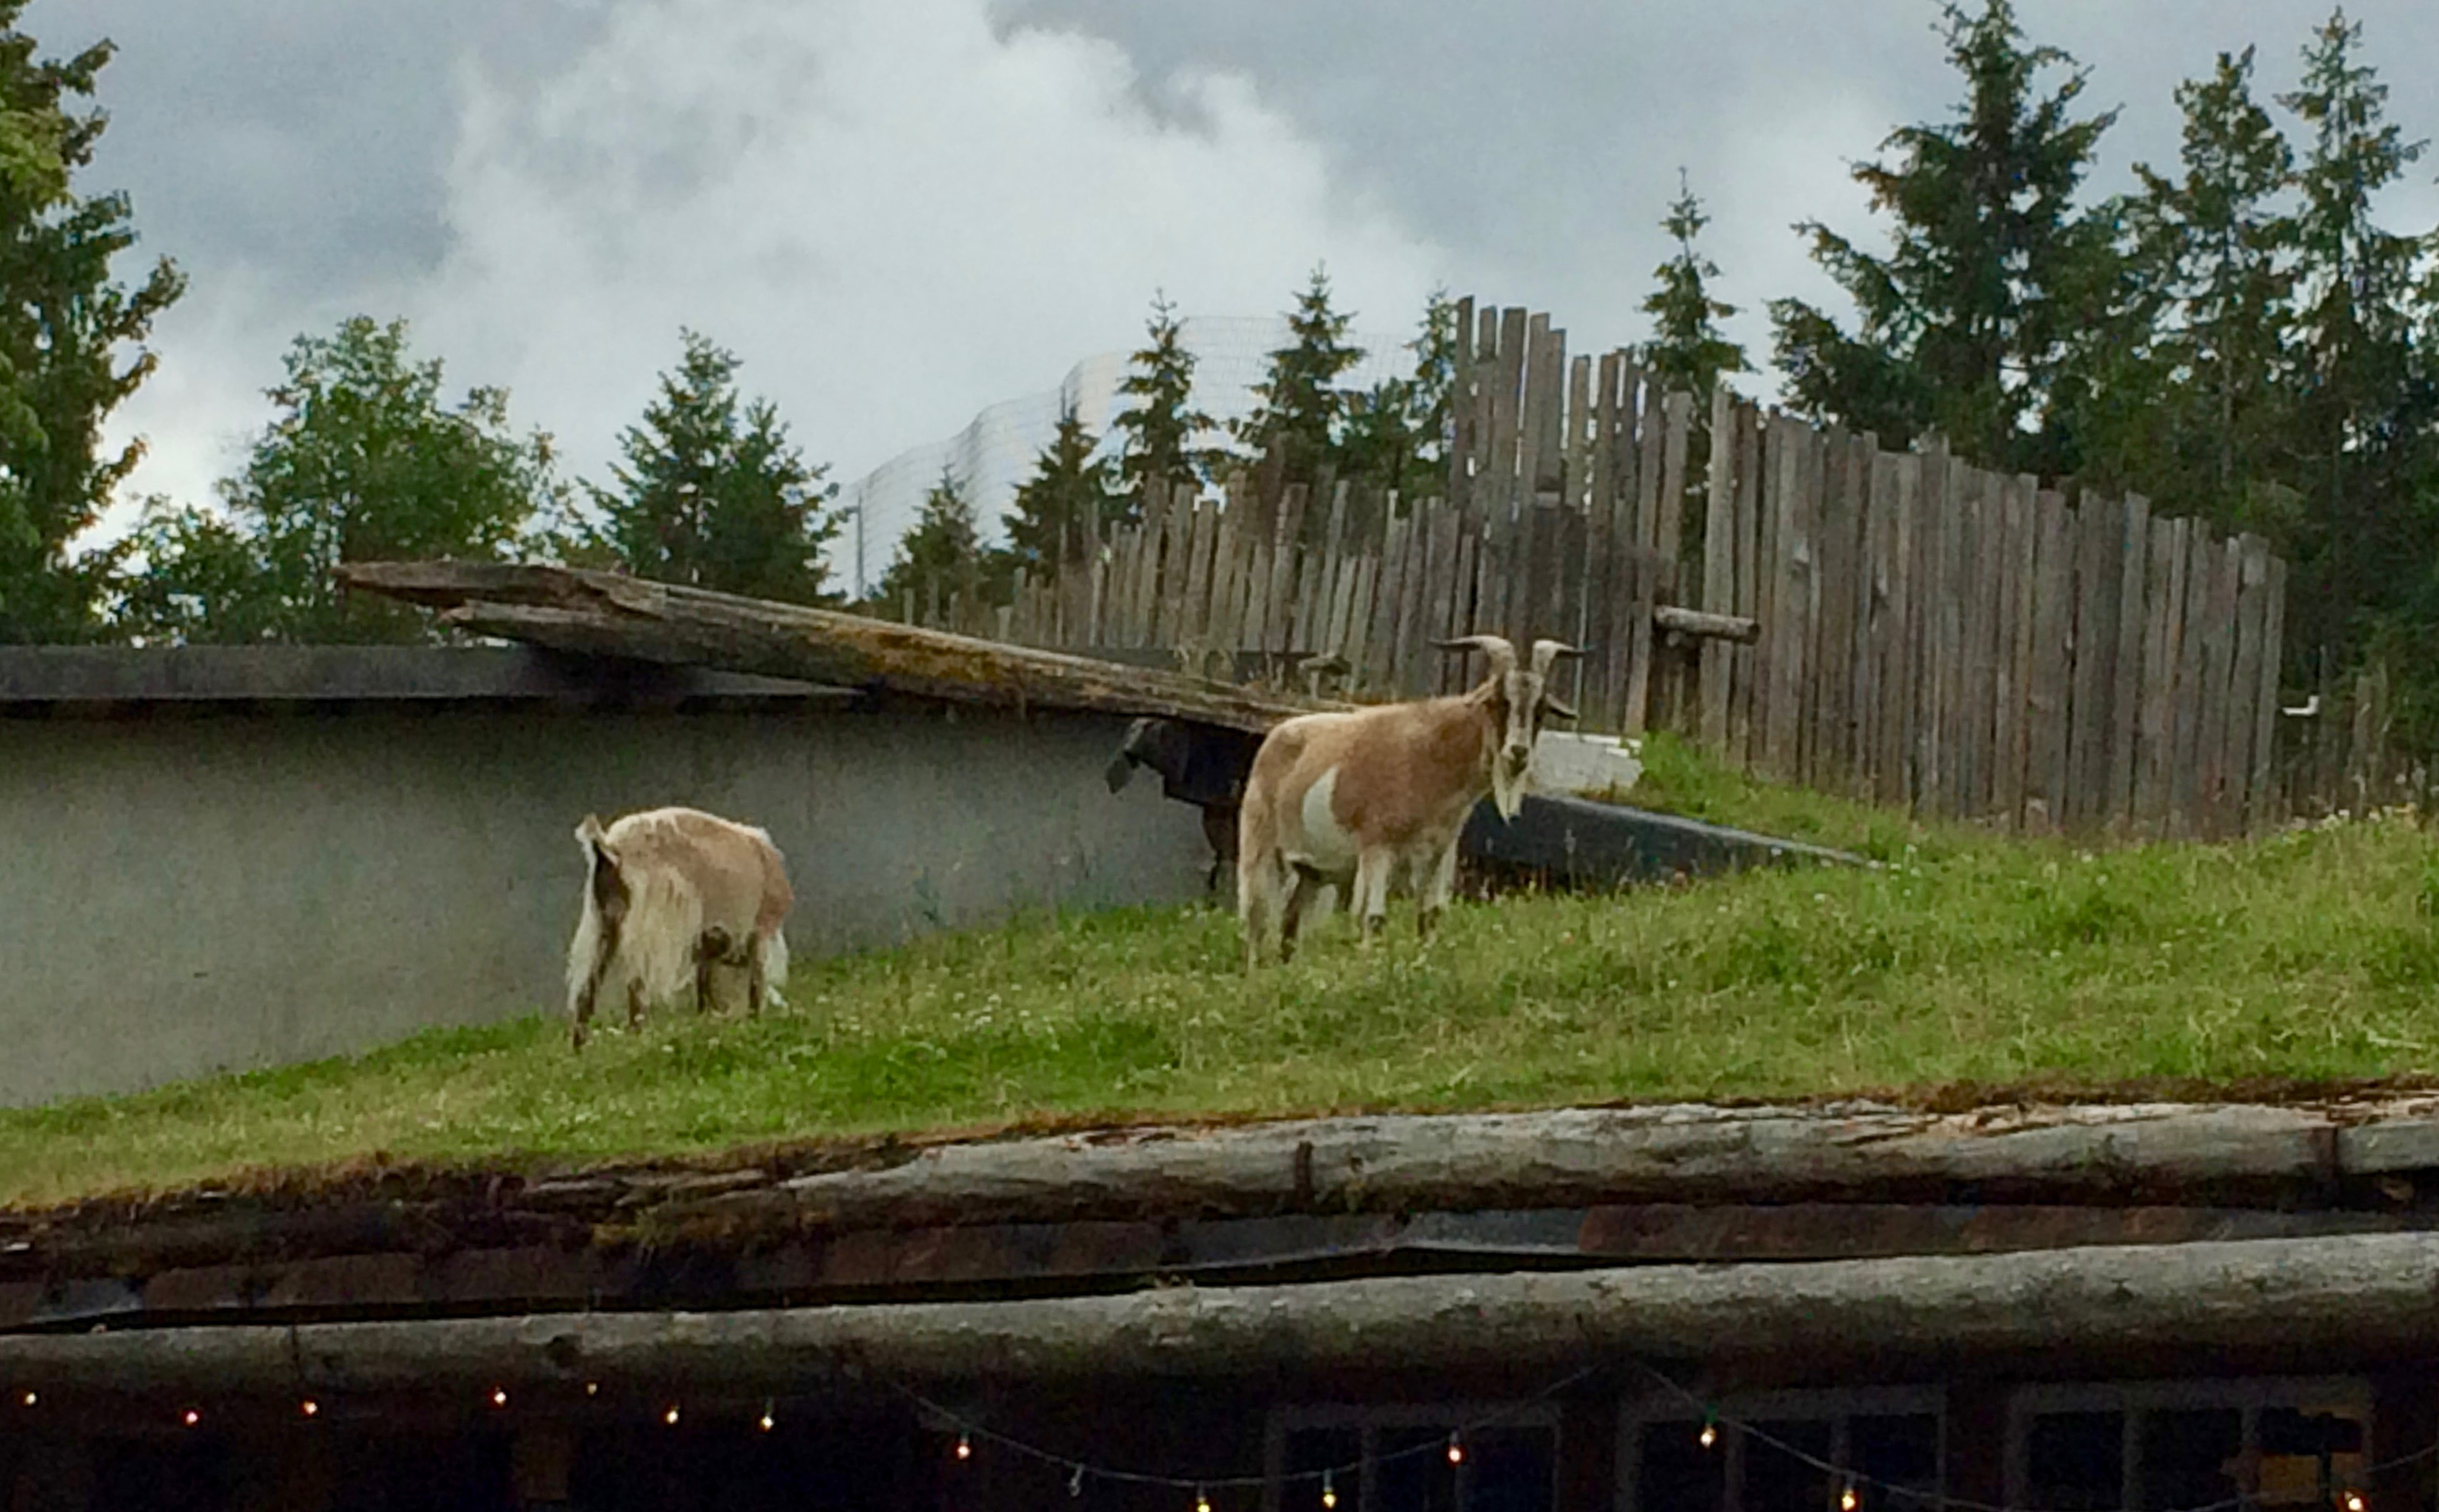 Two goats on the roof!